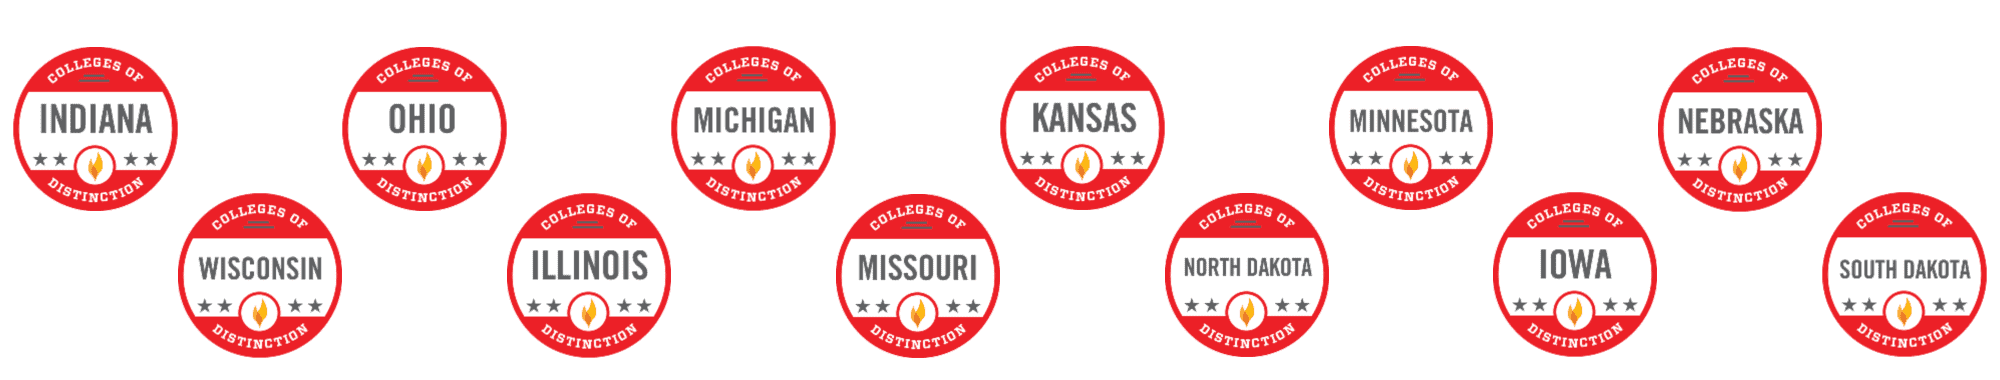 The Best Colleges of Distinction in the Midwest Region